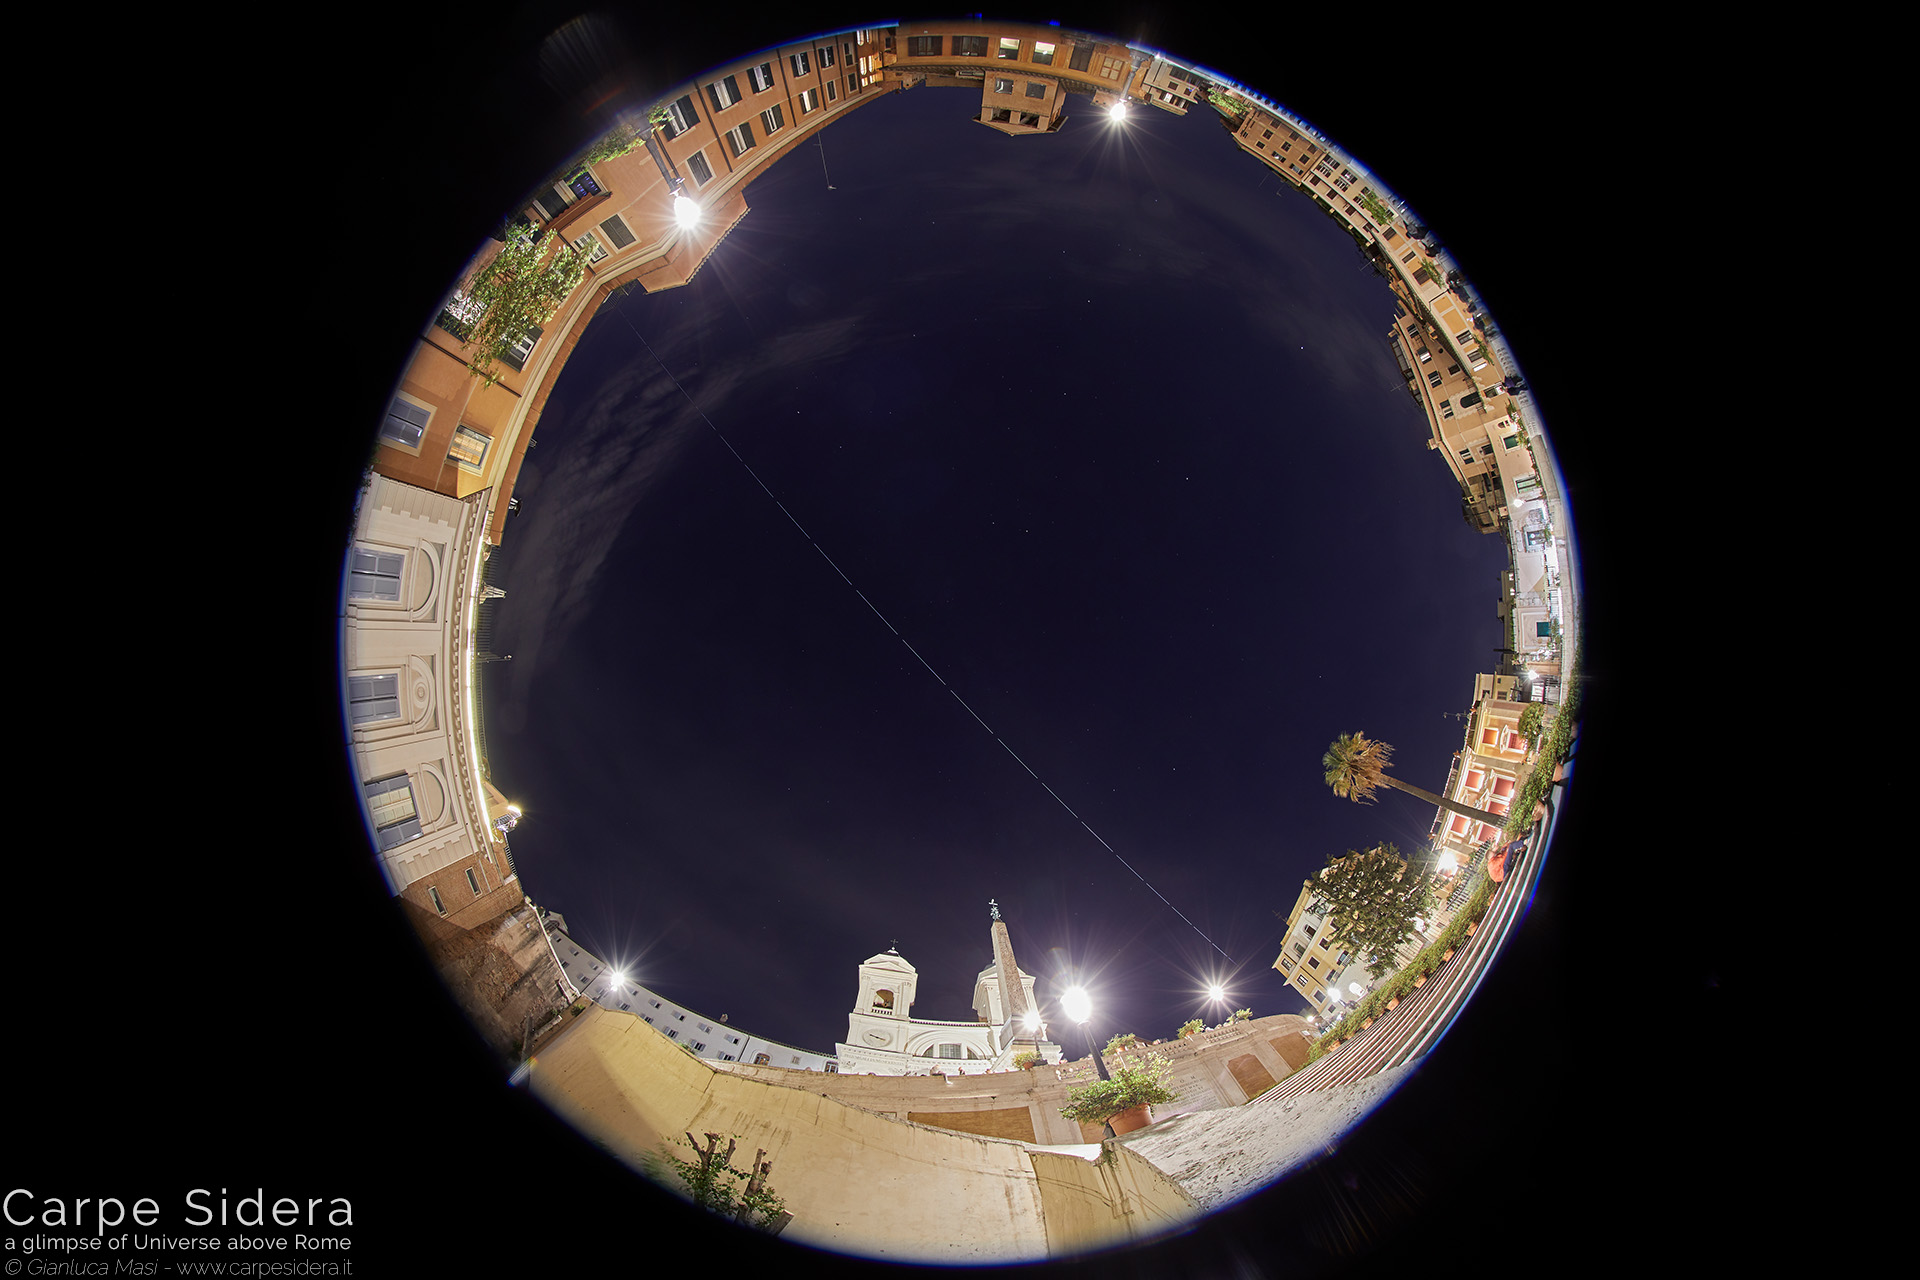 19. The International Space Station (ISS) flies above the Spanish Steps.